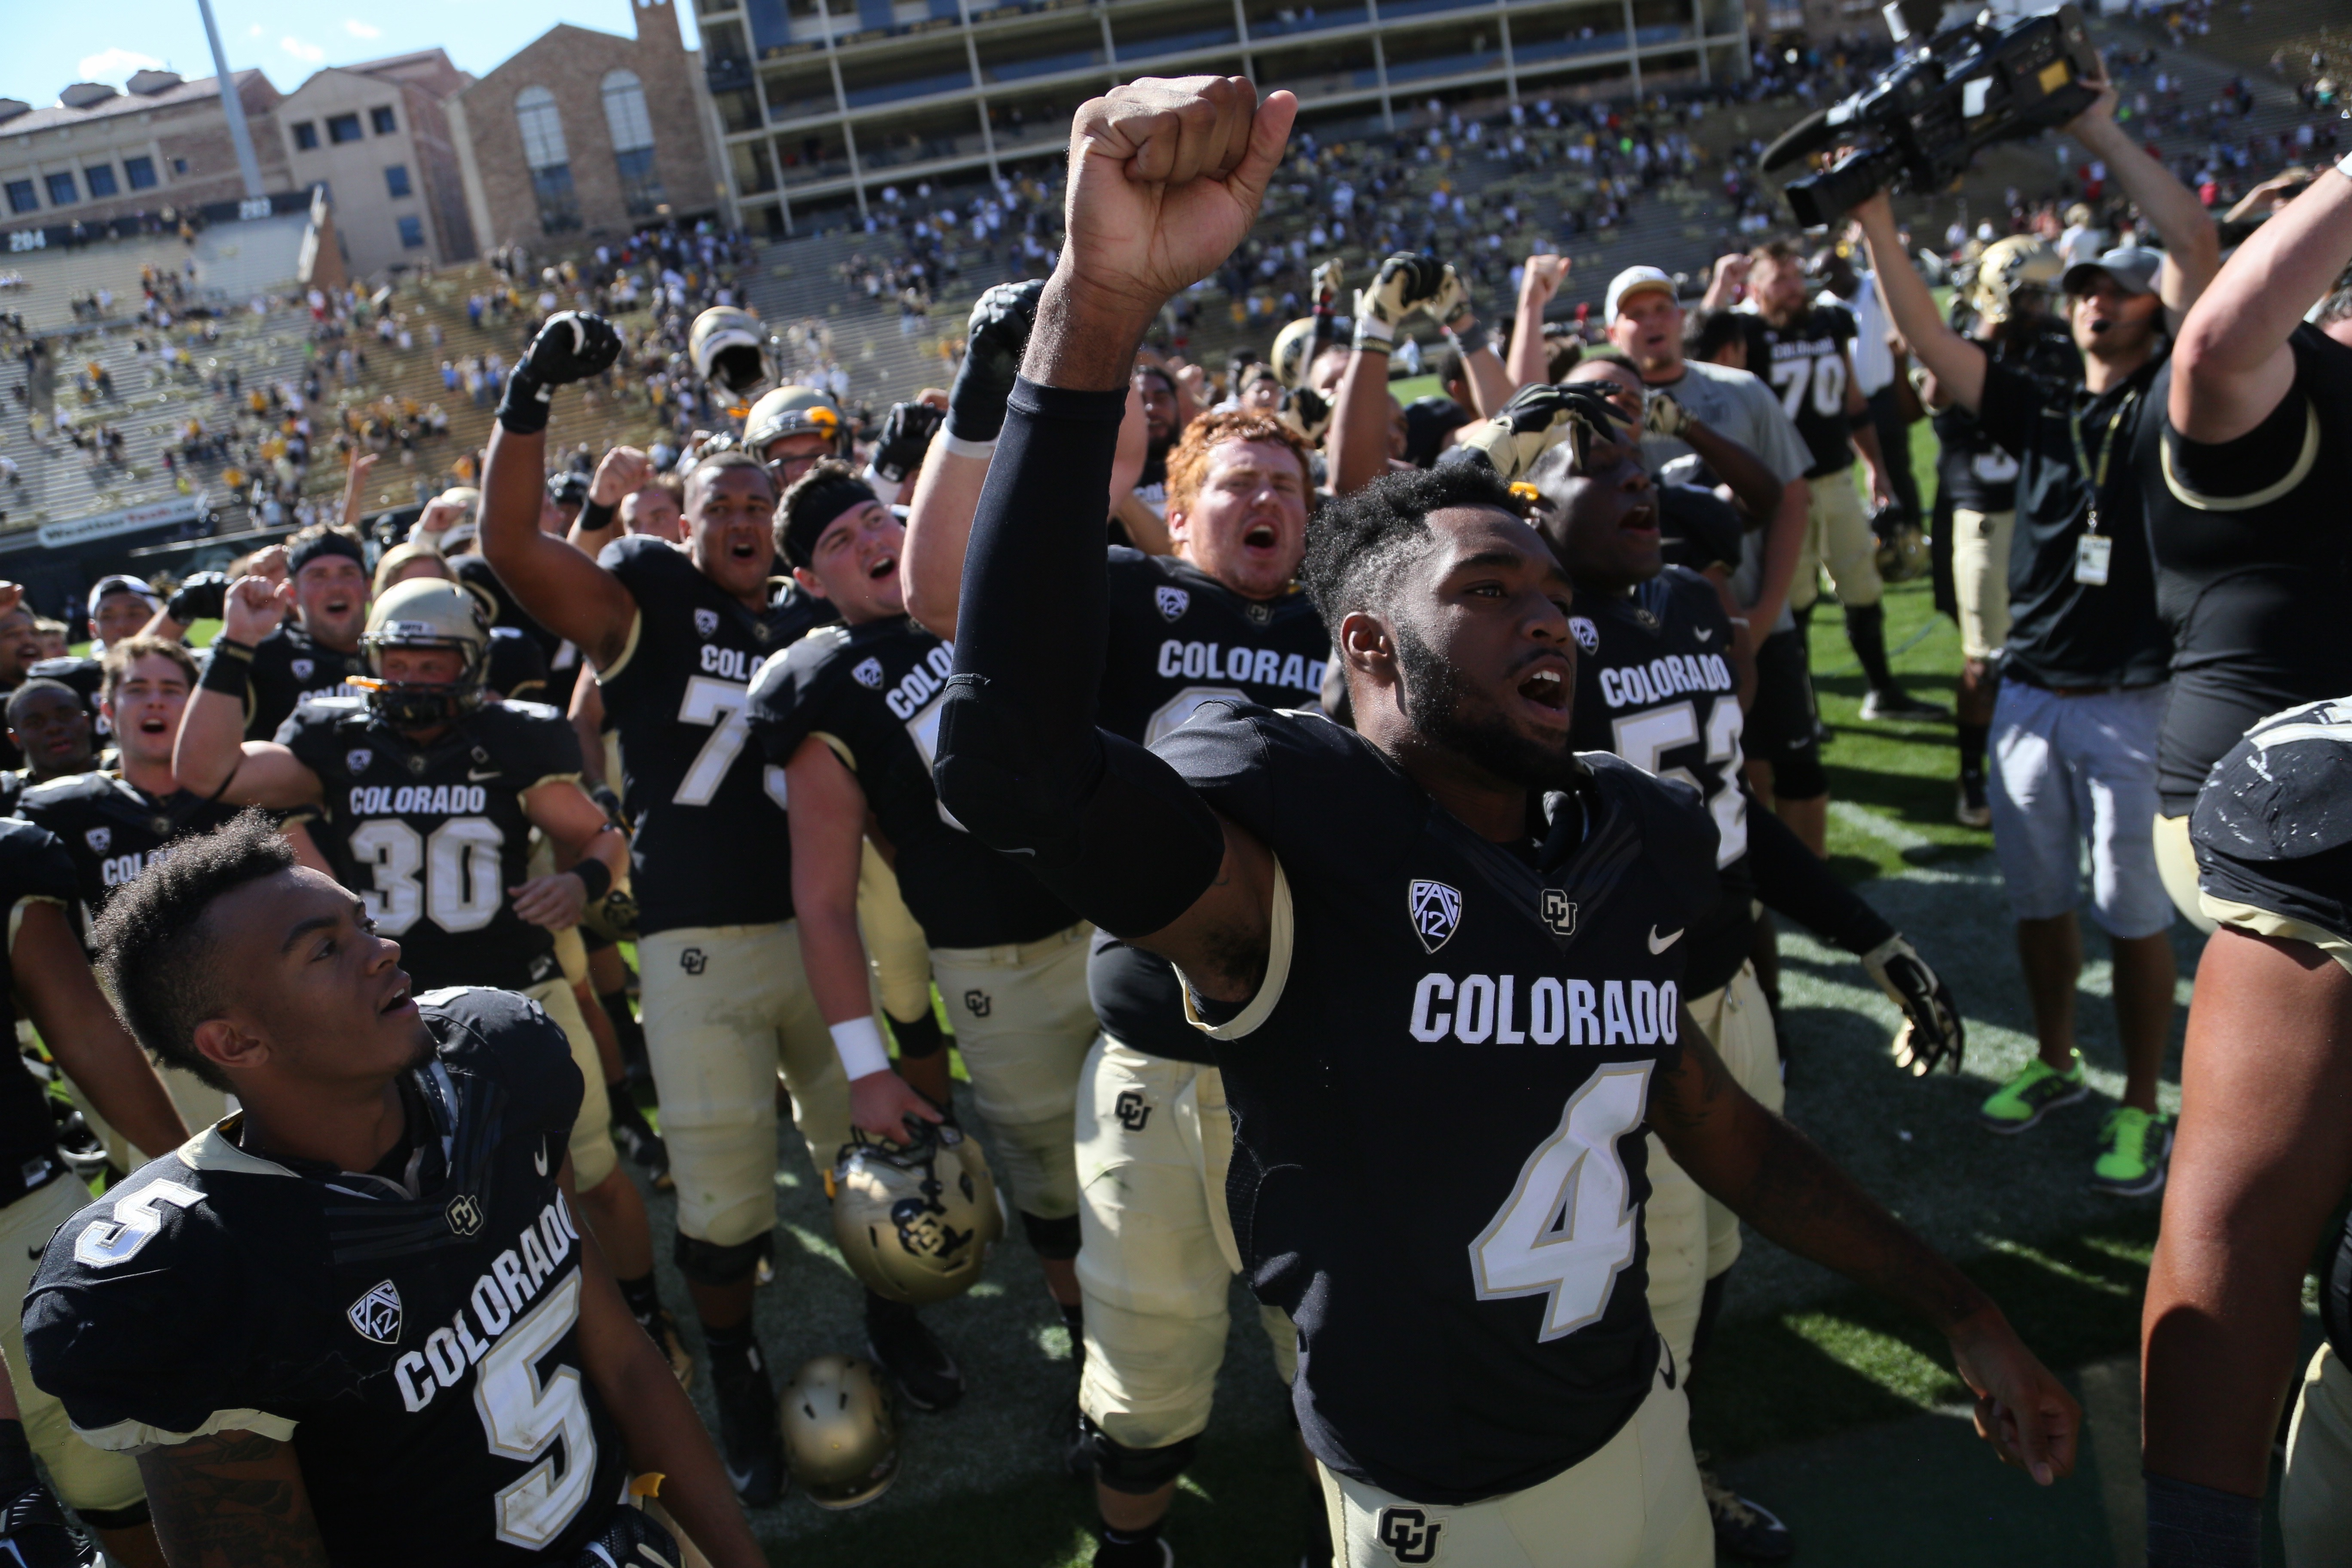 The Buffs celebrate their 48-14 victory over the UMass minutemen at Folsom Field. (Nigel Amstock/CU Independent)